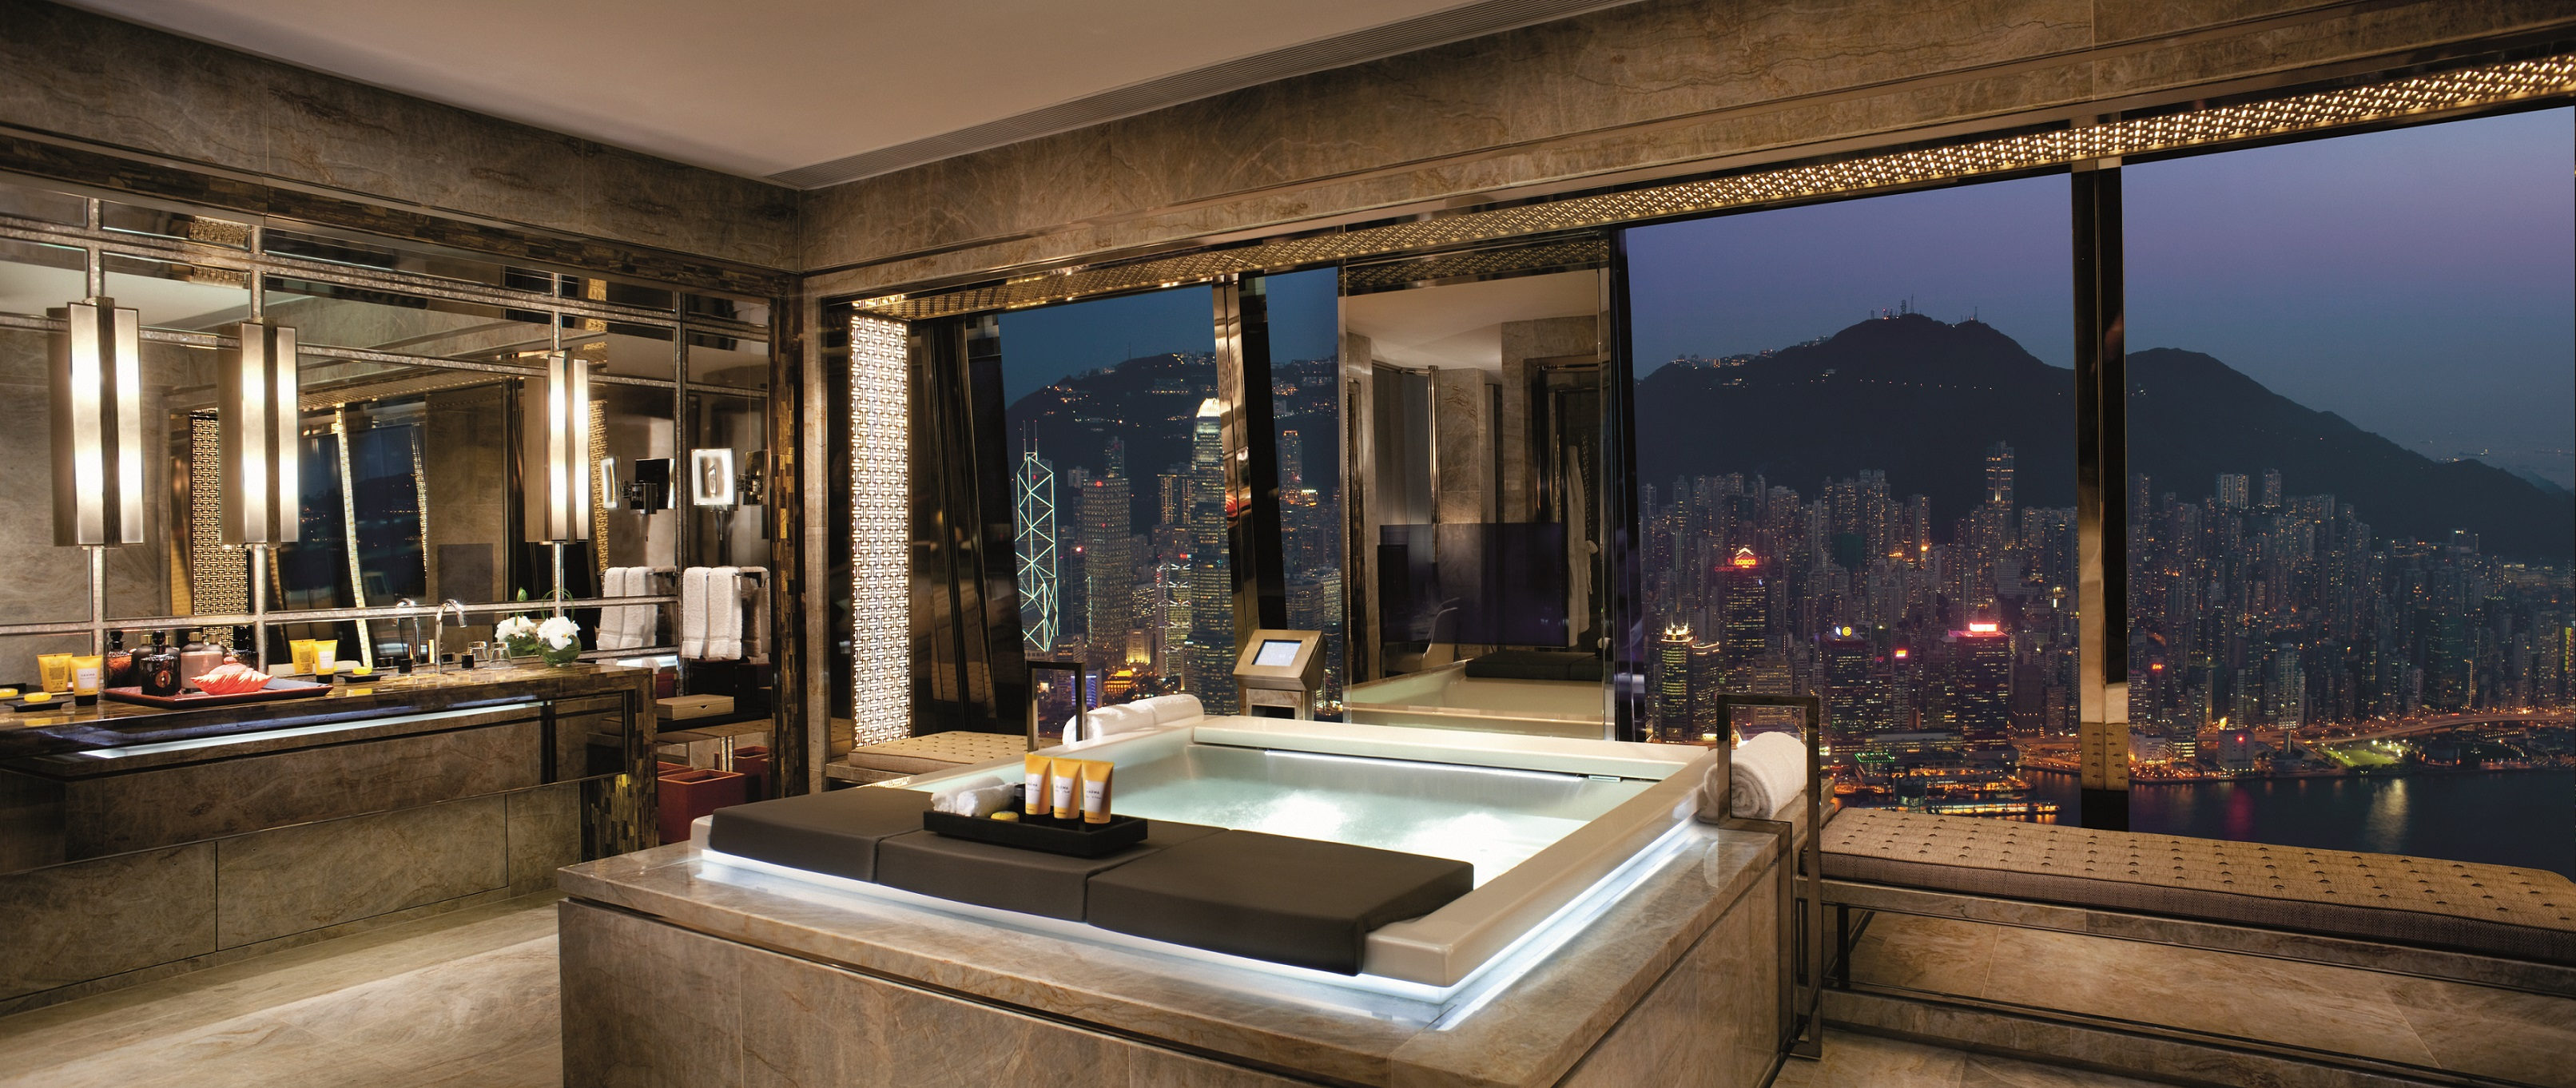 Pictures Of Luxury Bathrooms Amusing Discover The World's Best Luxury Bathrooms Review